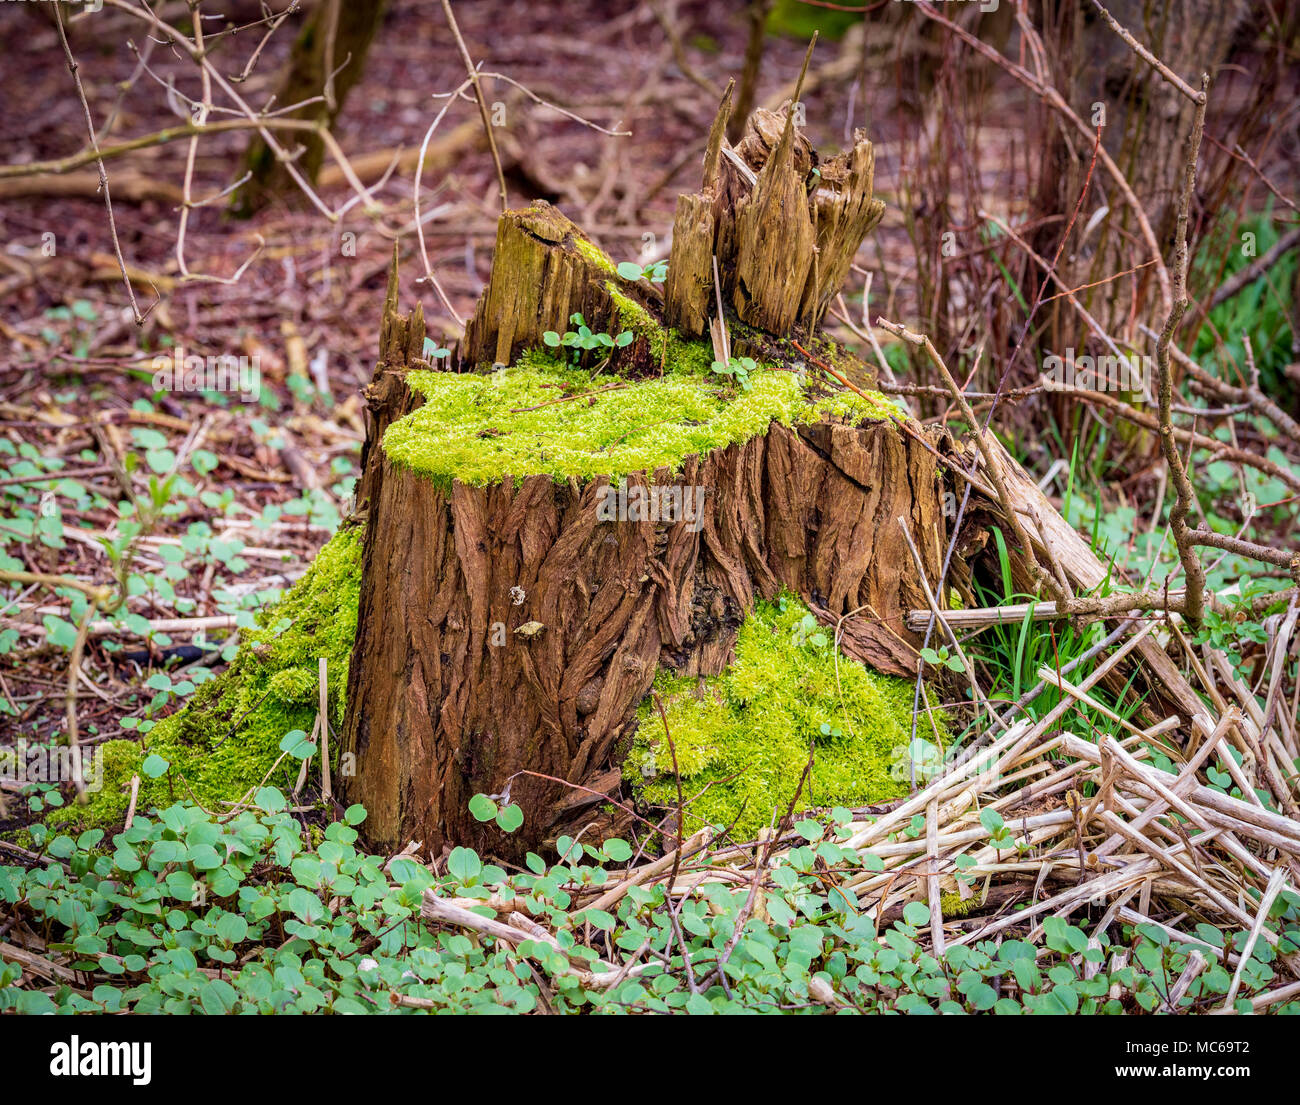 Natures colours Rotting tree stump covered in moss. - Stock Image